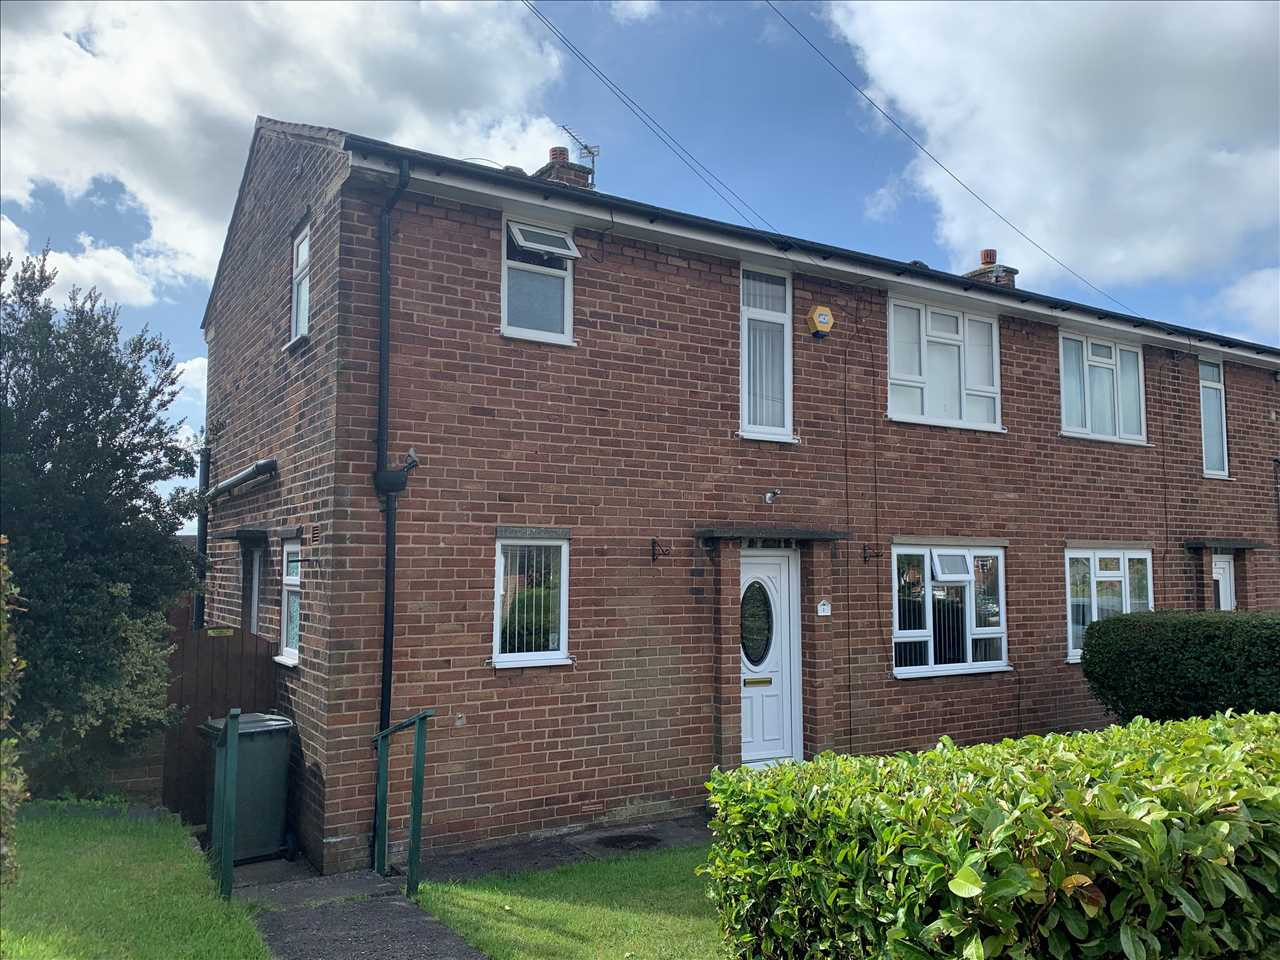 3 bed semi-detached for sale in Croston Avenue, Adlington, PR6